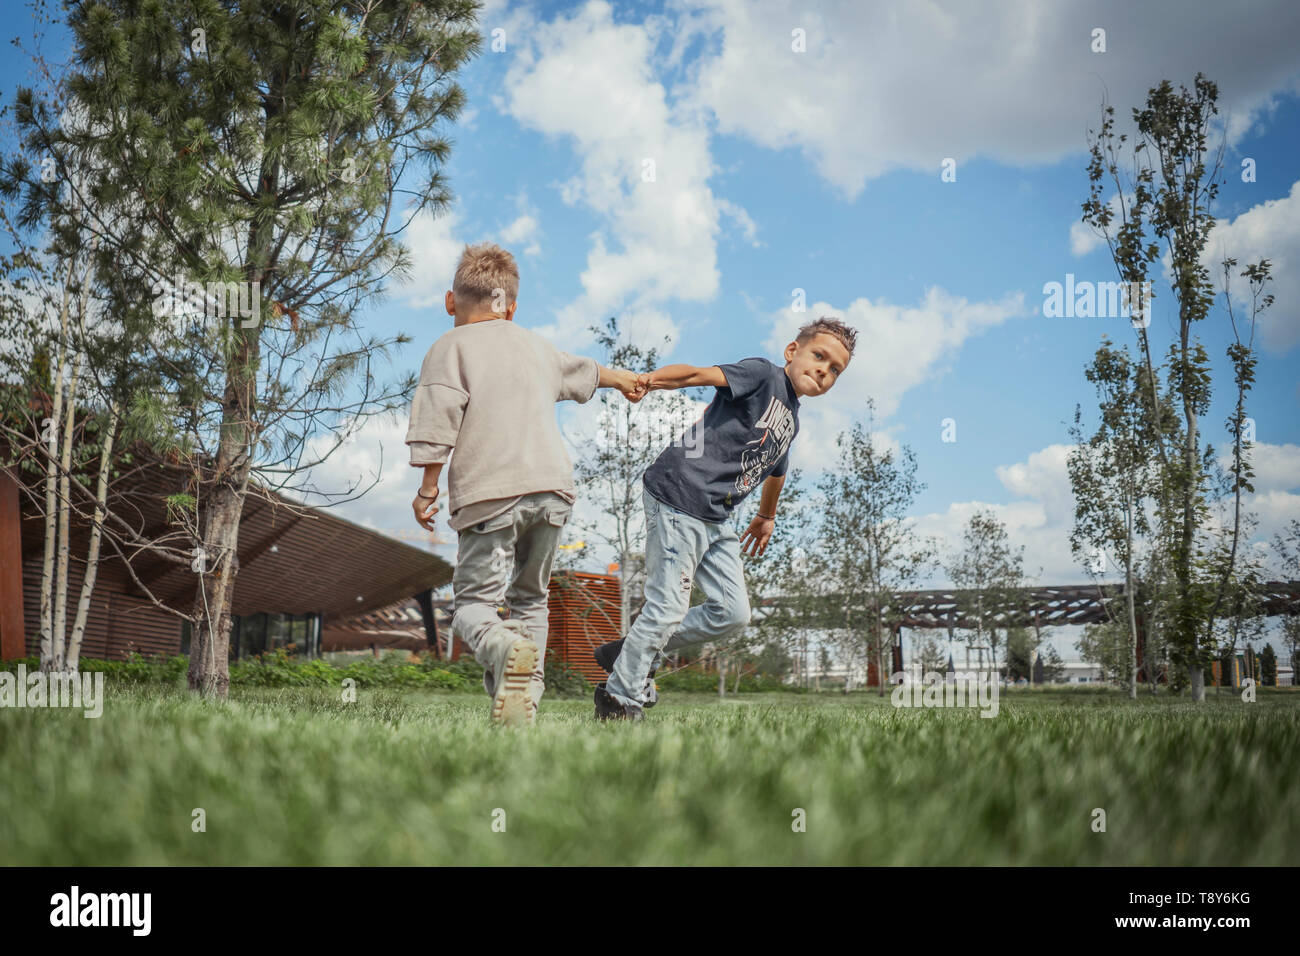 Two brothers turning around, whirling and having fun at green park. Happy family concept. - Stock Image